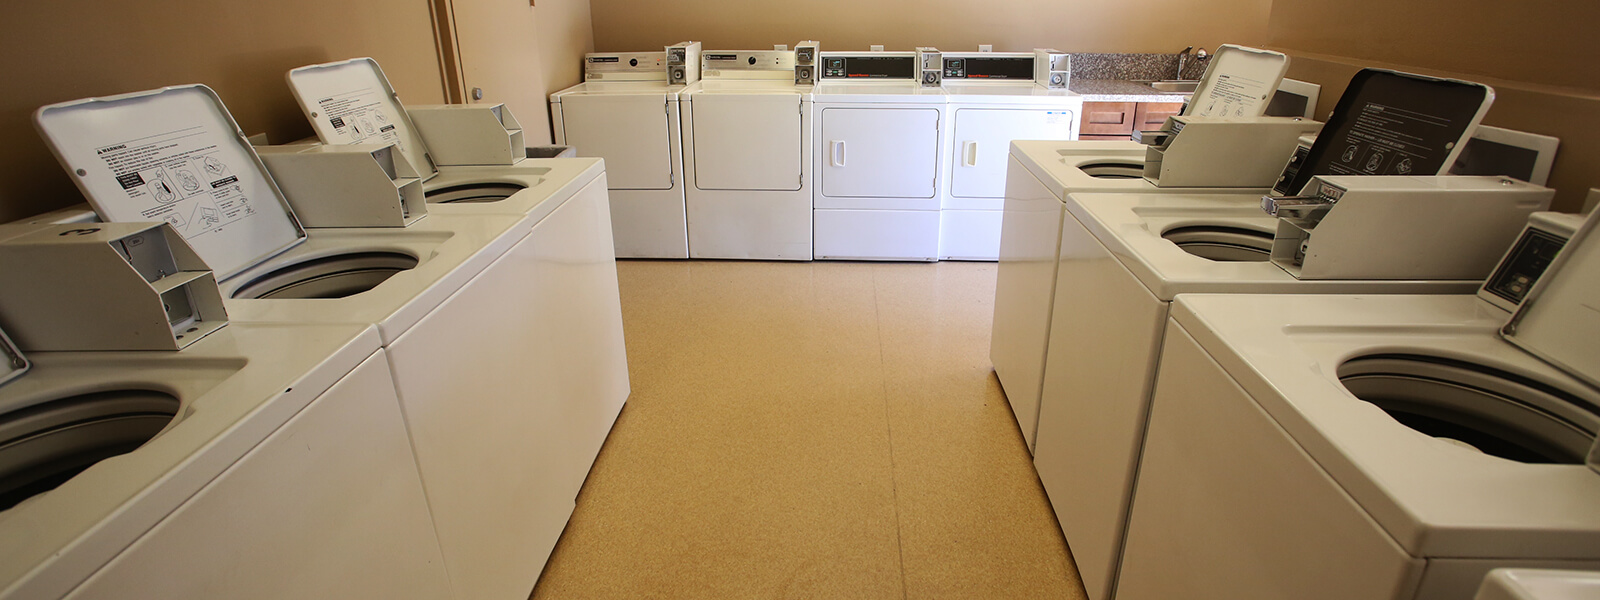 Fairplex RV Park Laundry